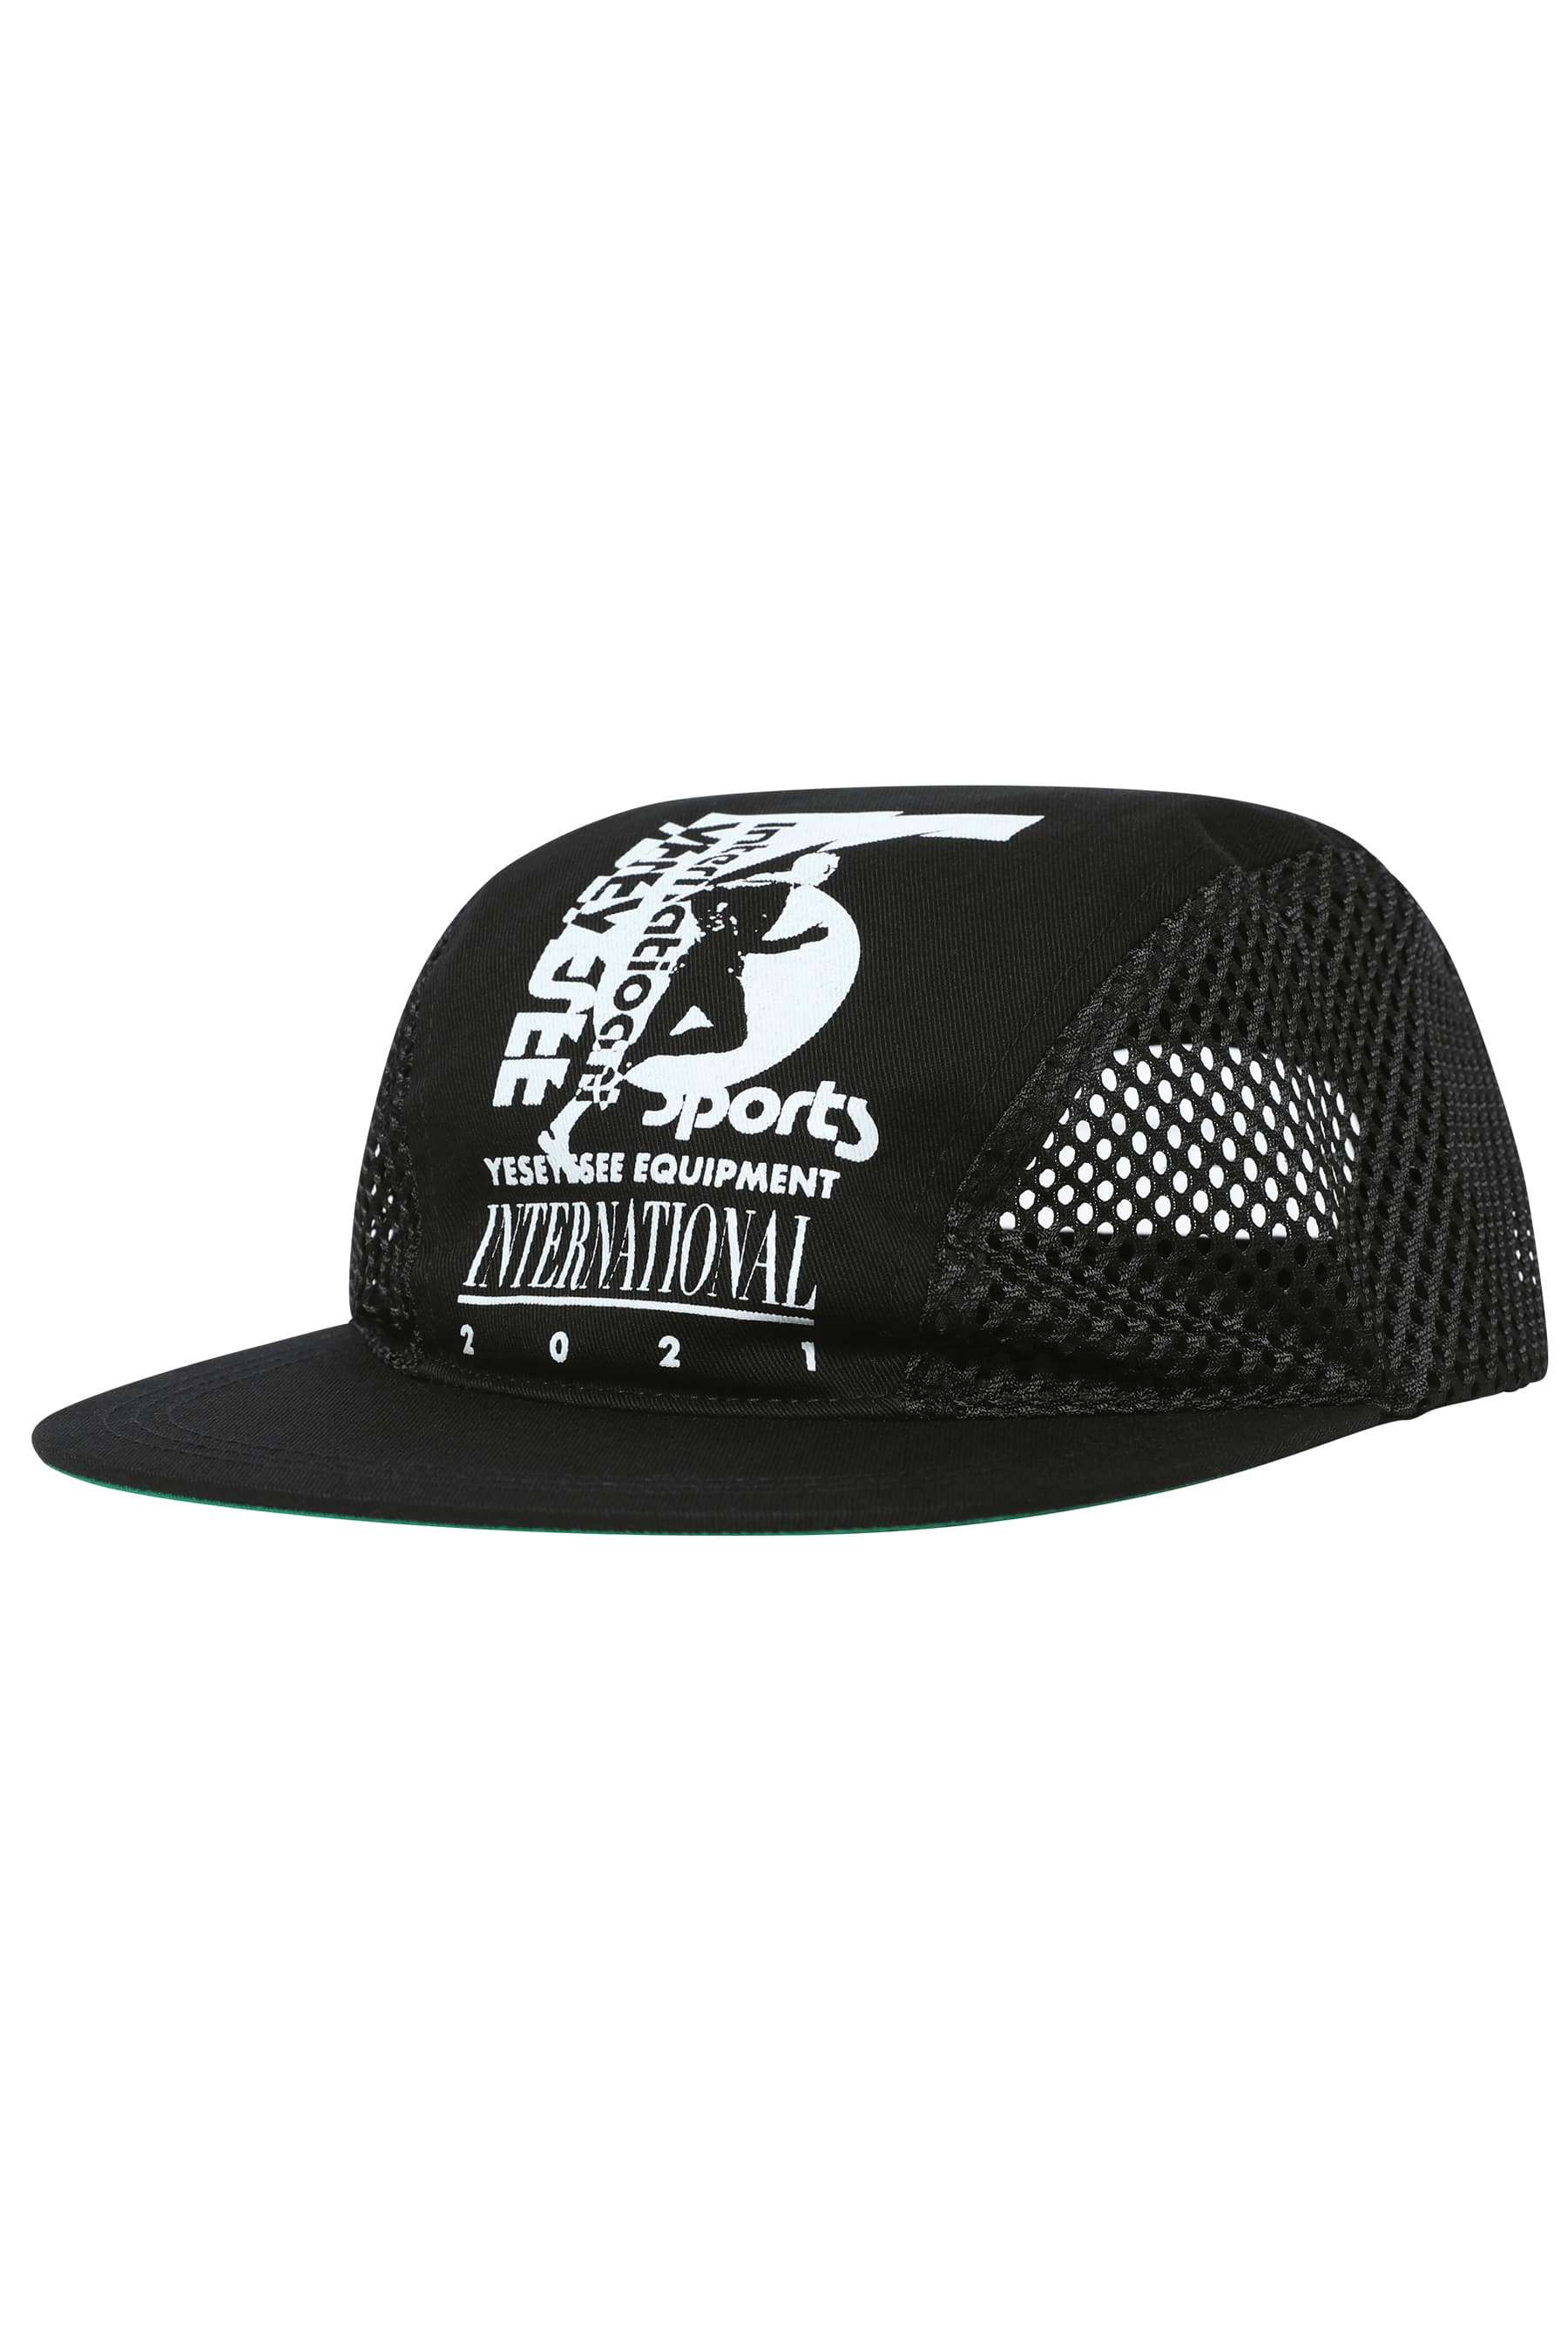 Y.E.S Sportsman Cap Black